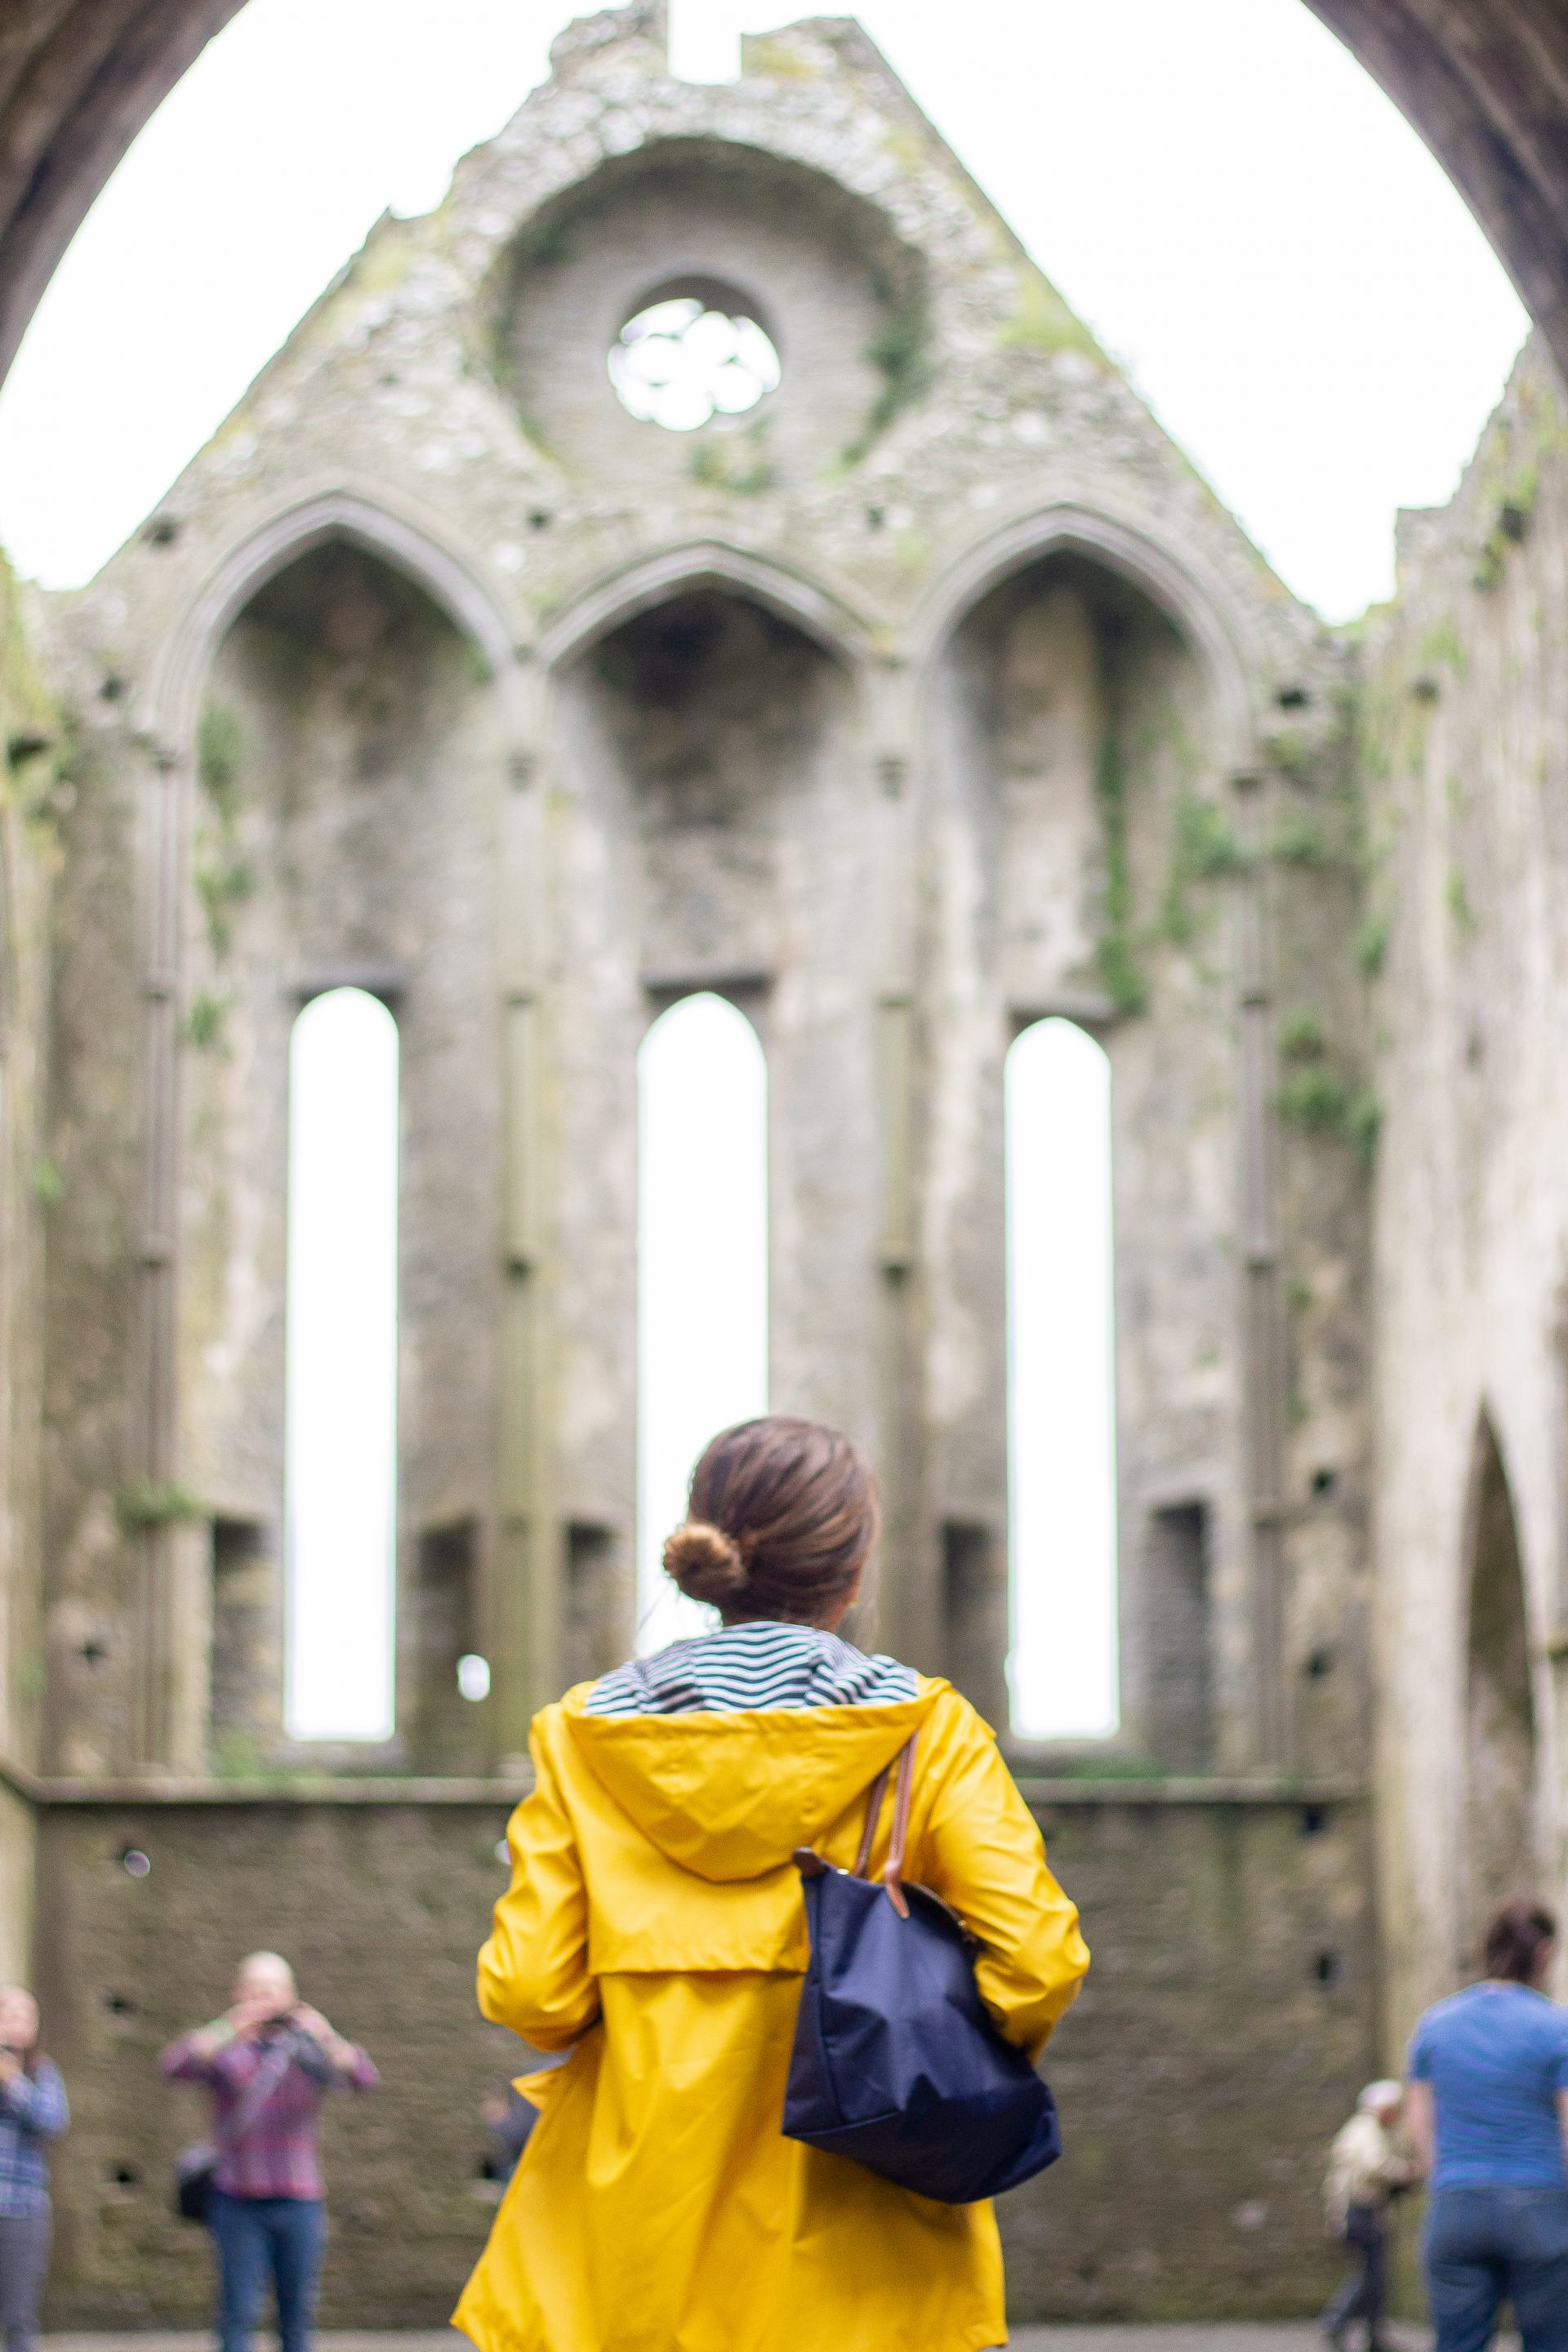 yellow rain jacket - rock of cashel - traveling in Ireland